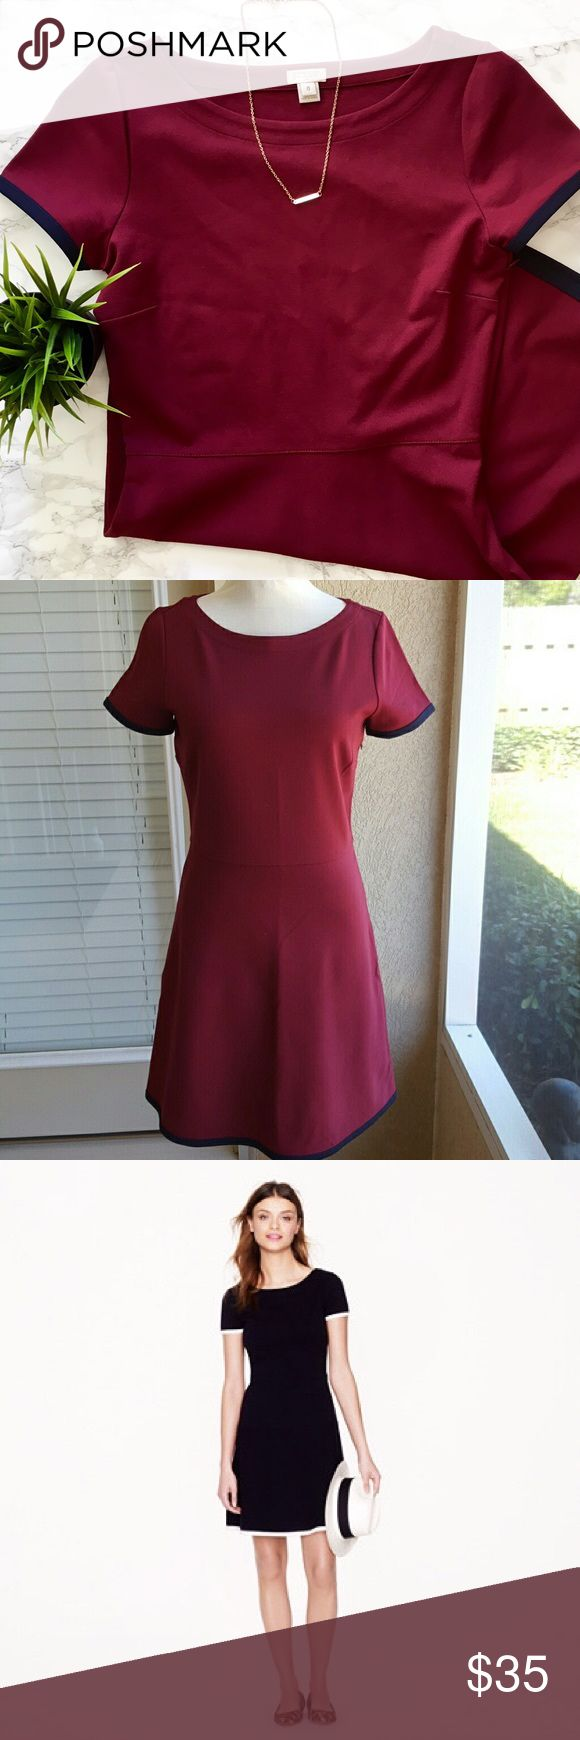 J. Crew Factory Tipped Ponte Burgundy Dress EUC no flaws. J. Crew Factory waist-defining ponte dress in cranberry with navy blue accents on sleeve and hem. Size 0. Short sleeves, side zipper, falls above the knee. Classic style. Very high quality feel to the material and structure of this dress. Please feel free to ask any questions before purchasing. I am happy to provide measurements upon request   ❣️Smoke-Free Environment ❣️Open to Offers ❣️No trades ❣️Bundle Discounts! 15% off 2+ items…